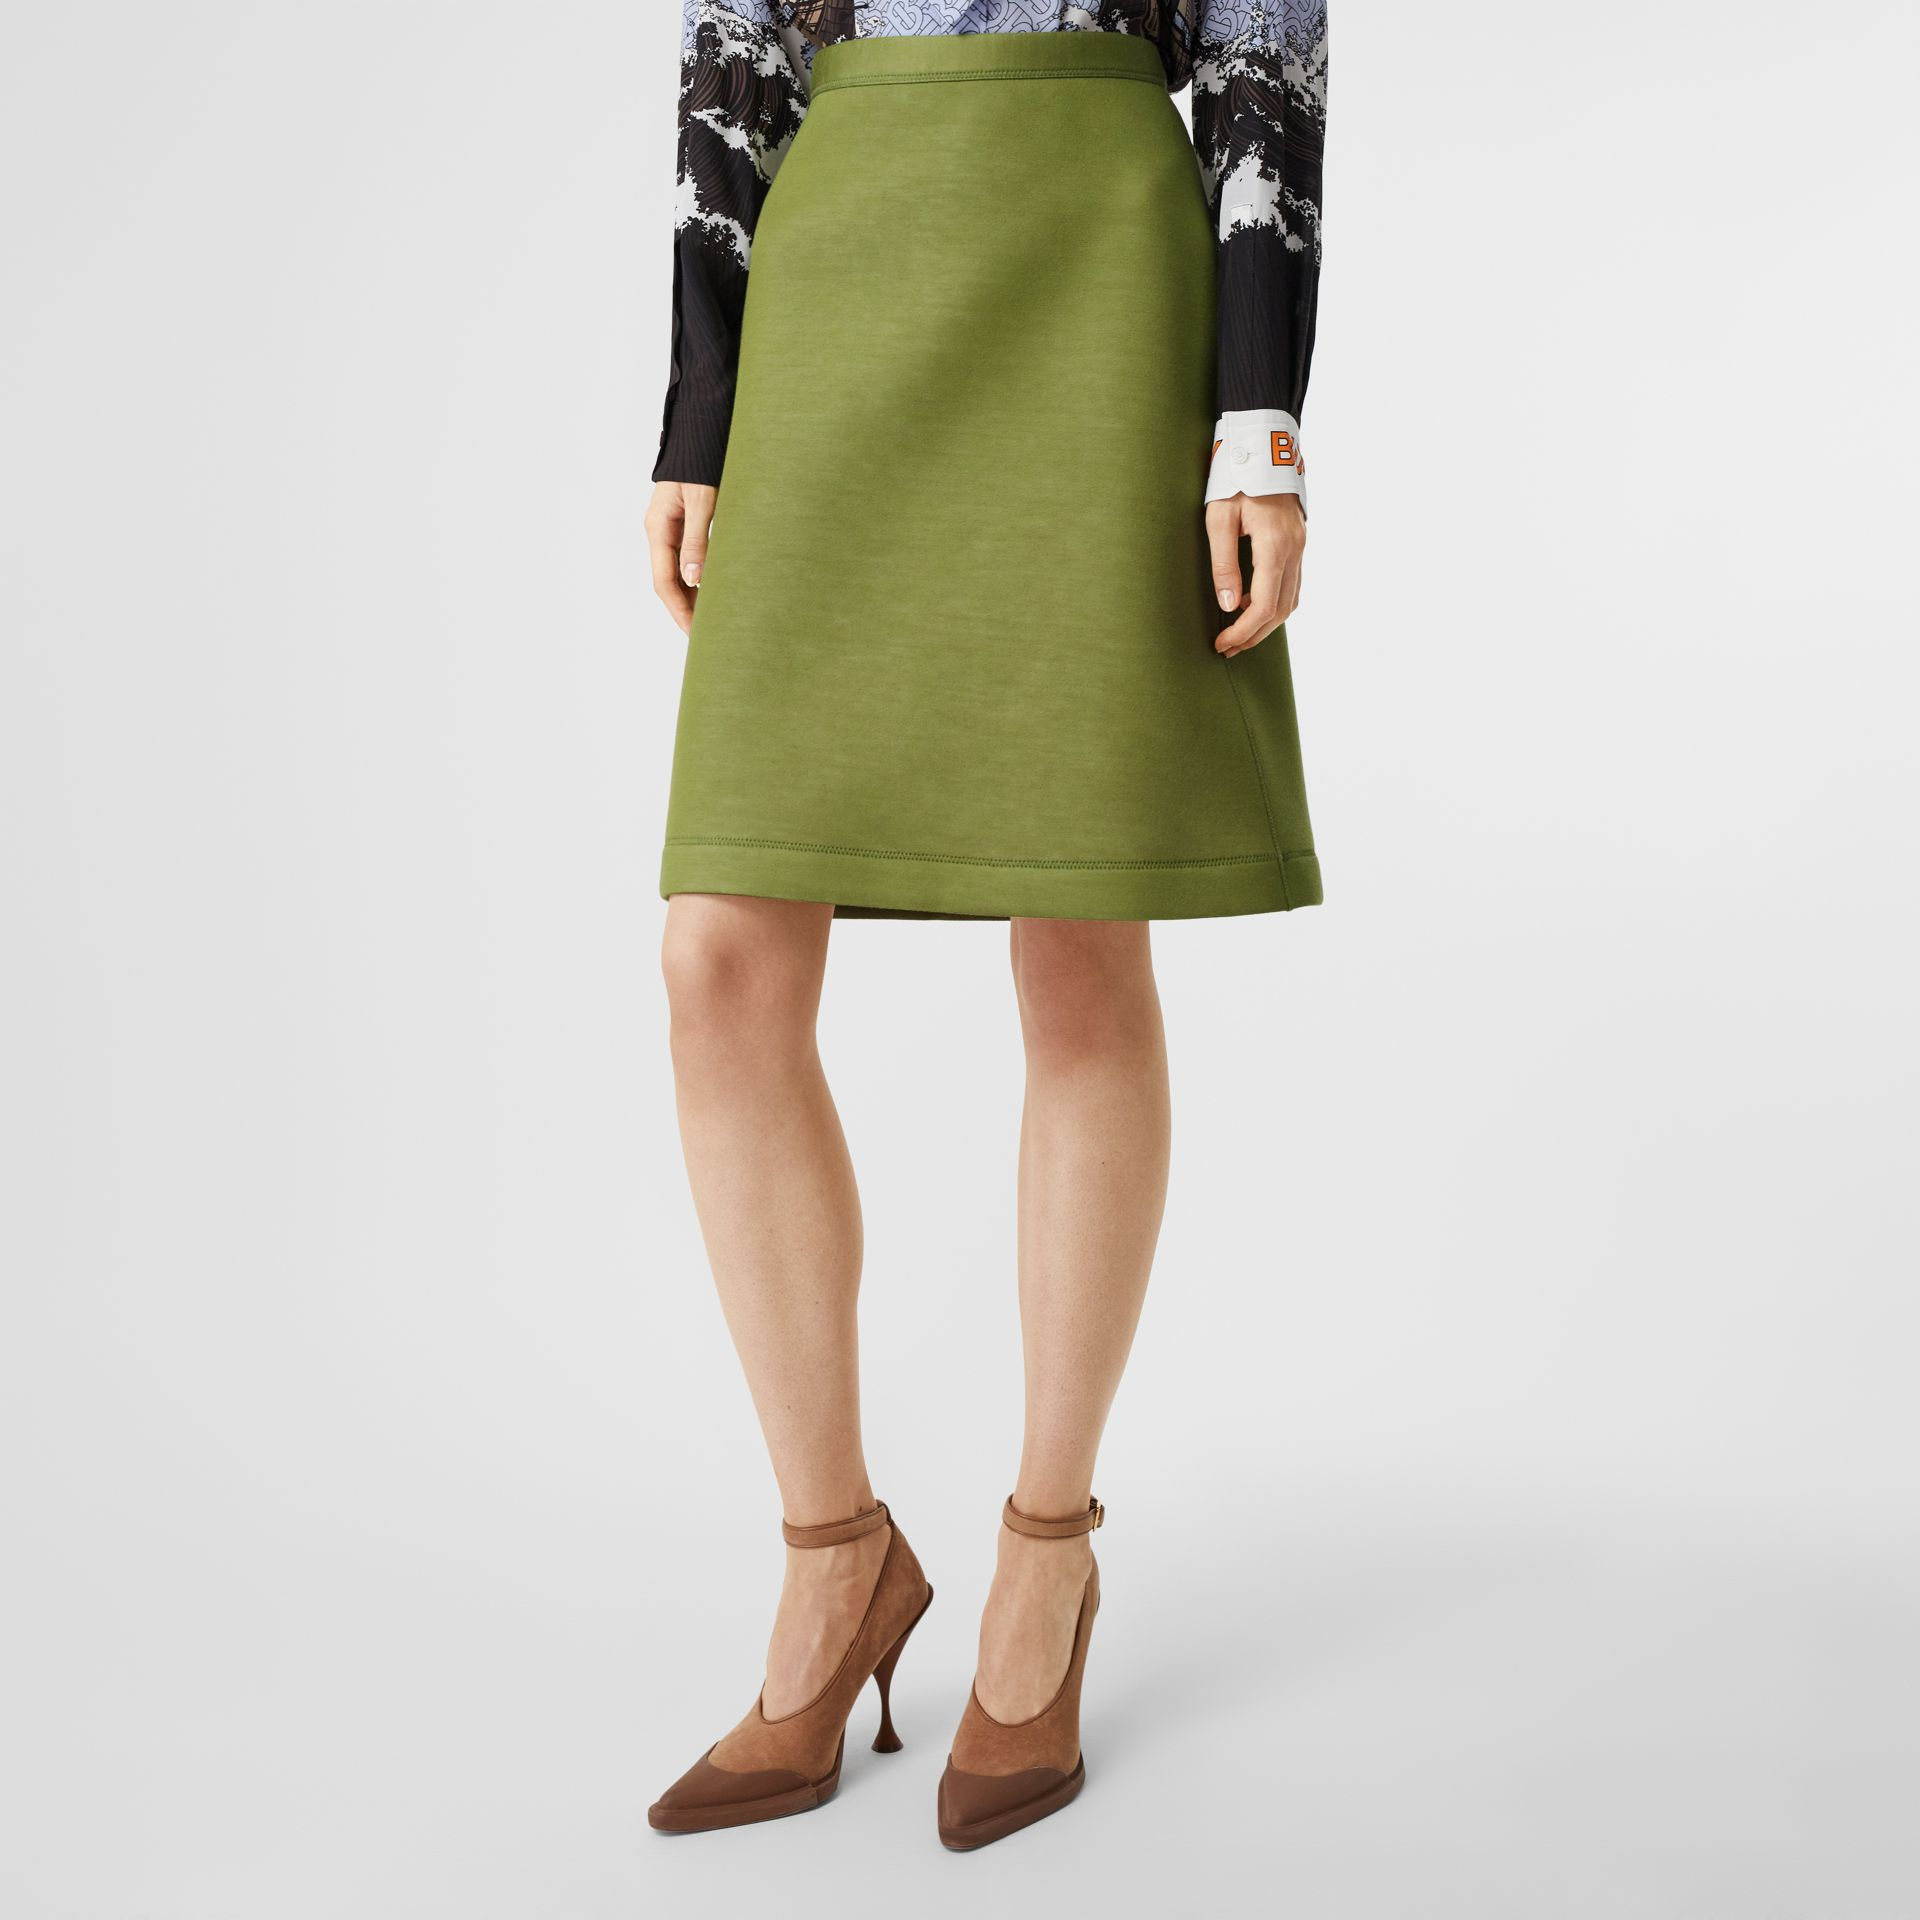 Double-faced Neoprene Skirt in Cedar Green - Women | Burberry - gallery image 5